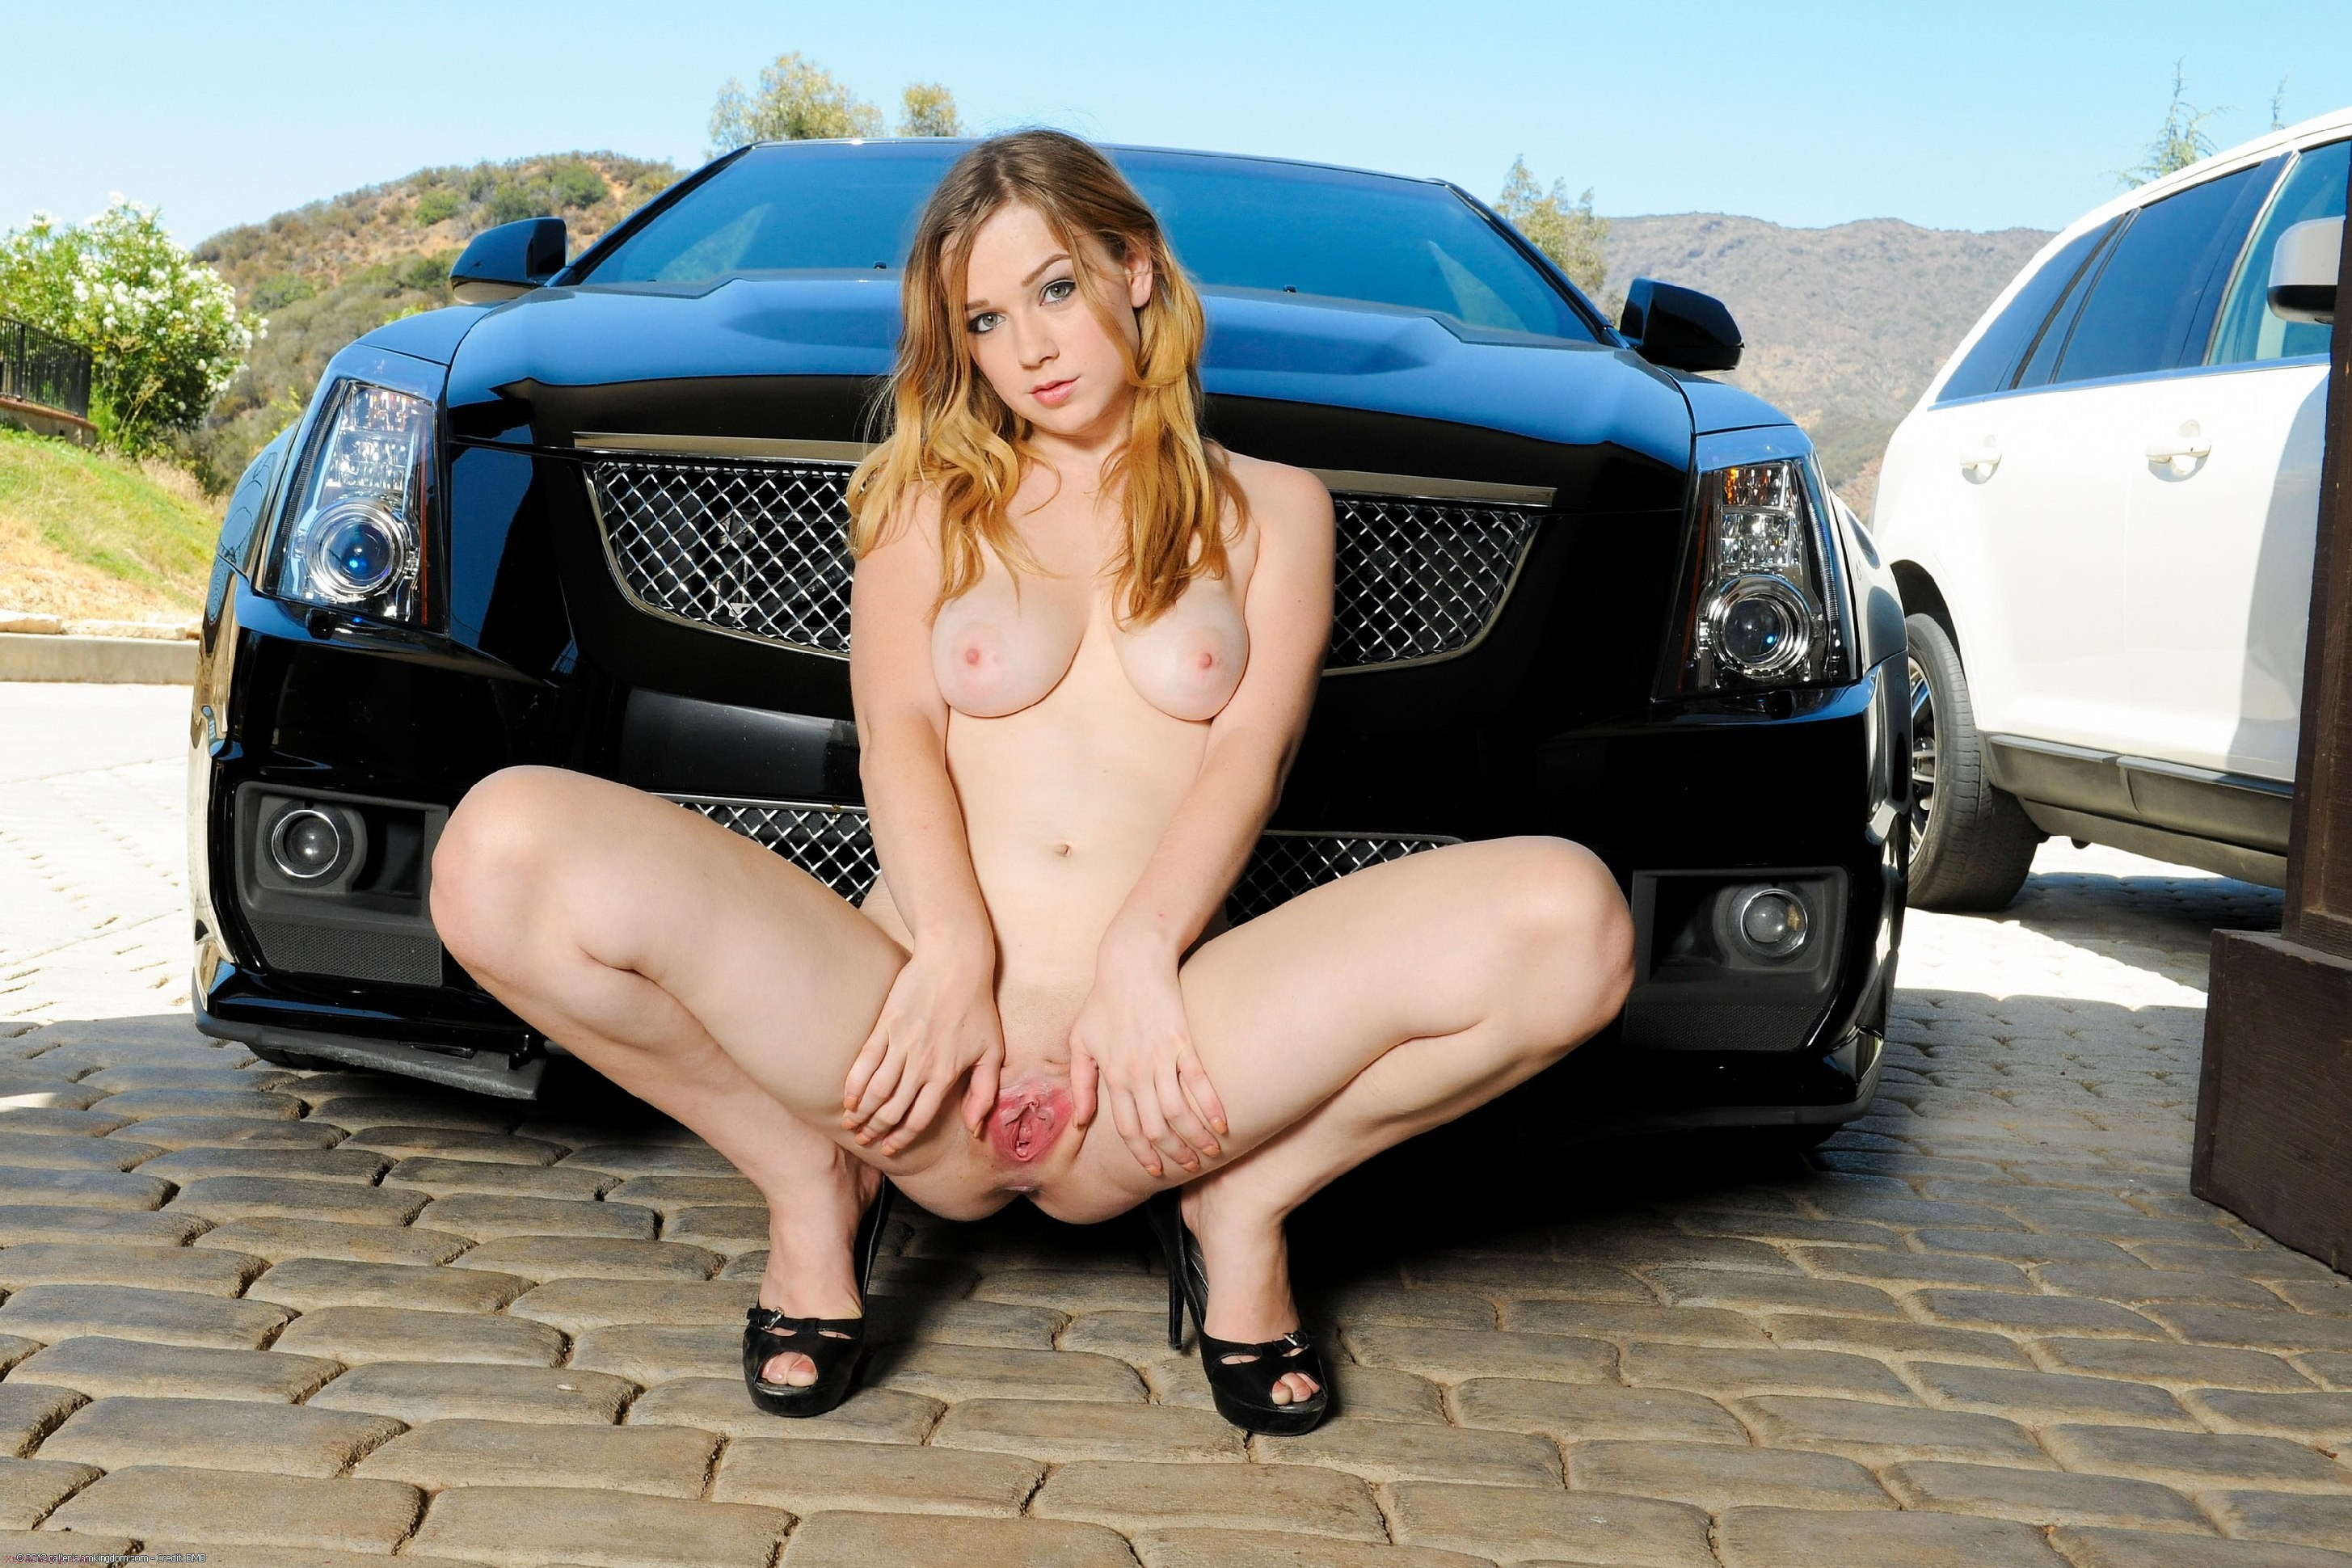 Not Star girls with hot cars naked seems